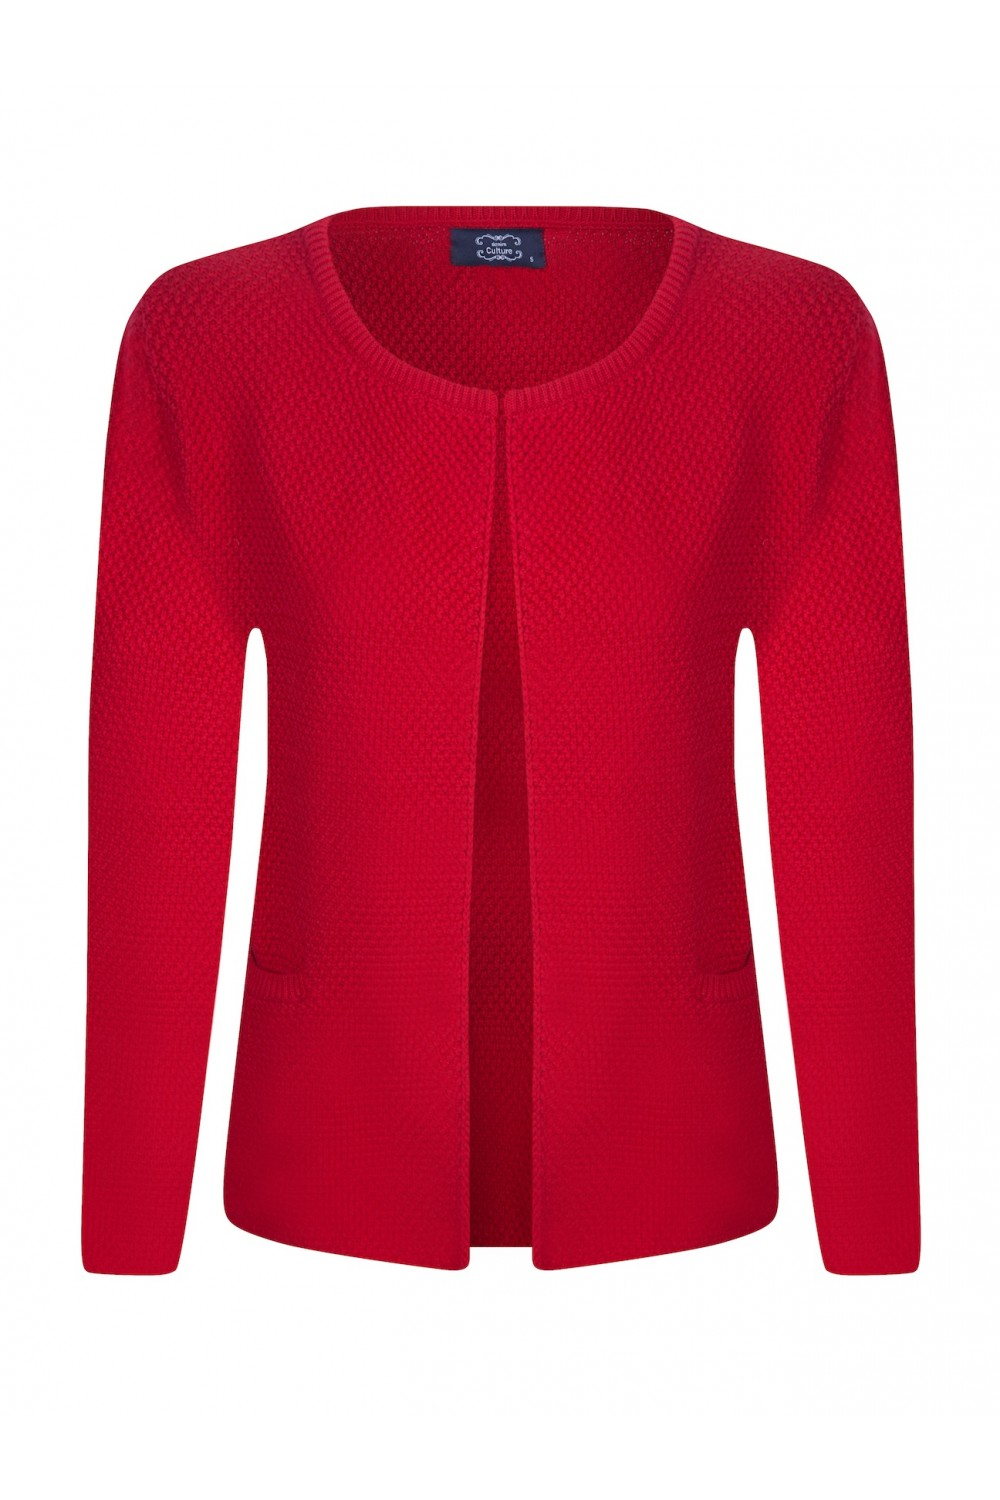 Women's Cardigan Hook Crew Neck Red